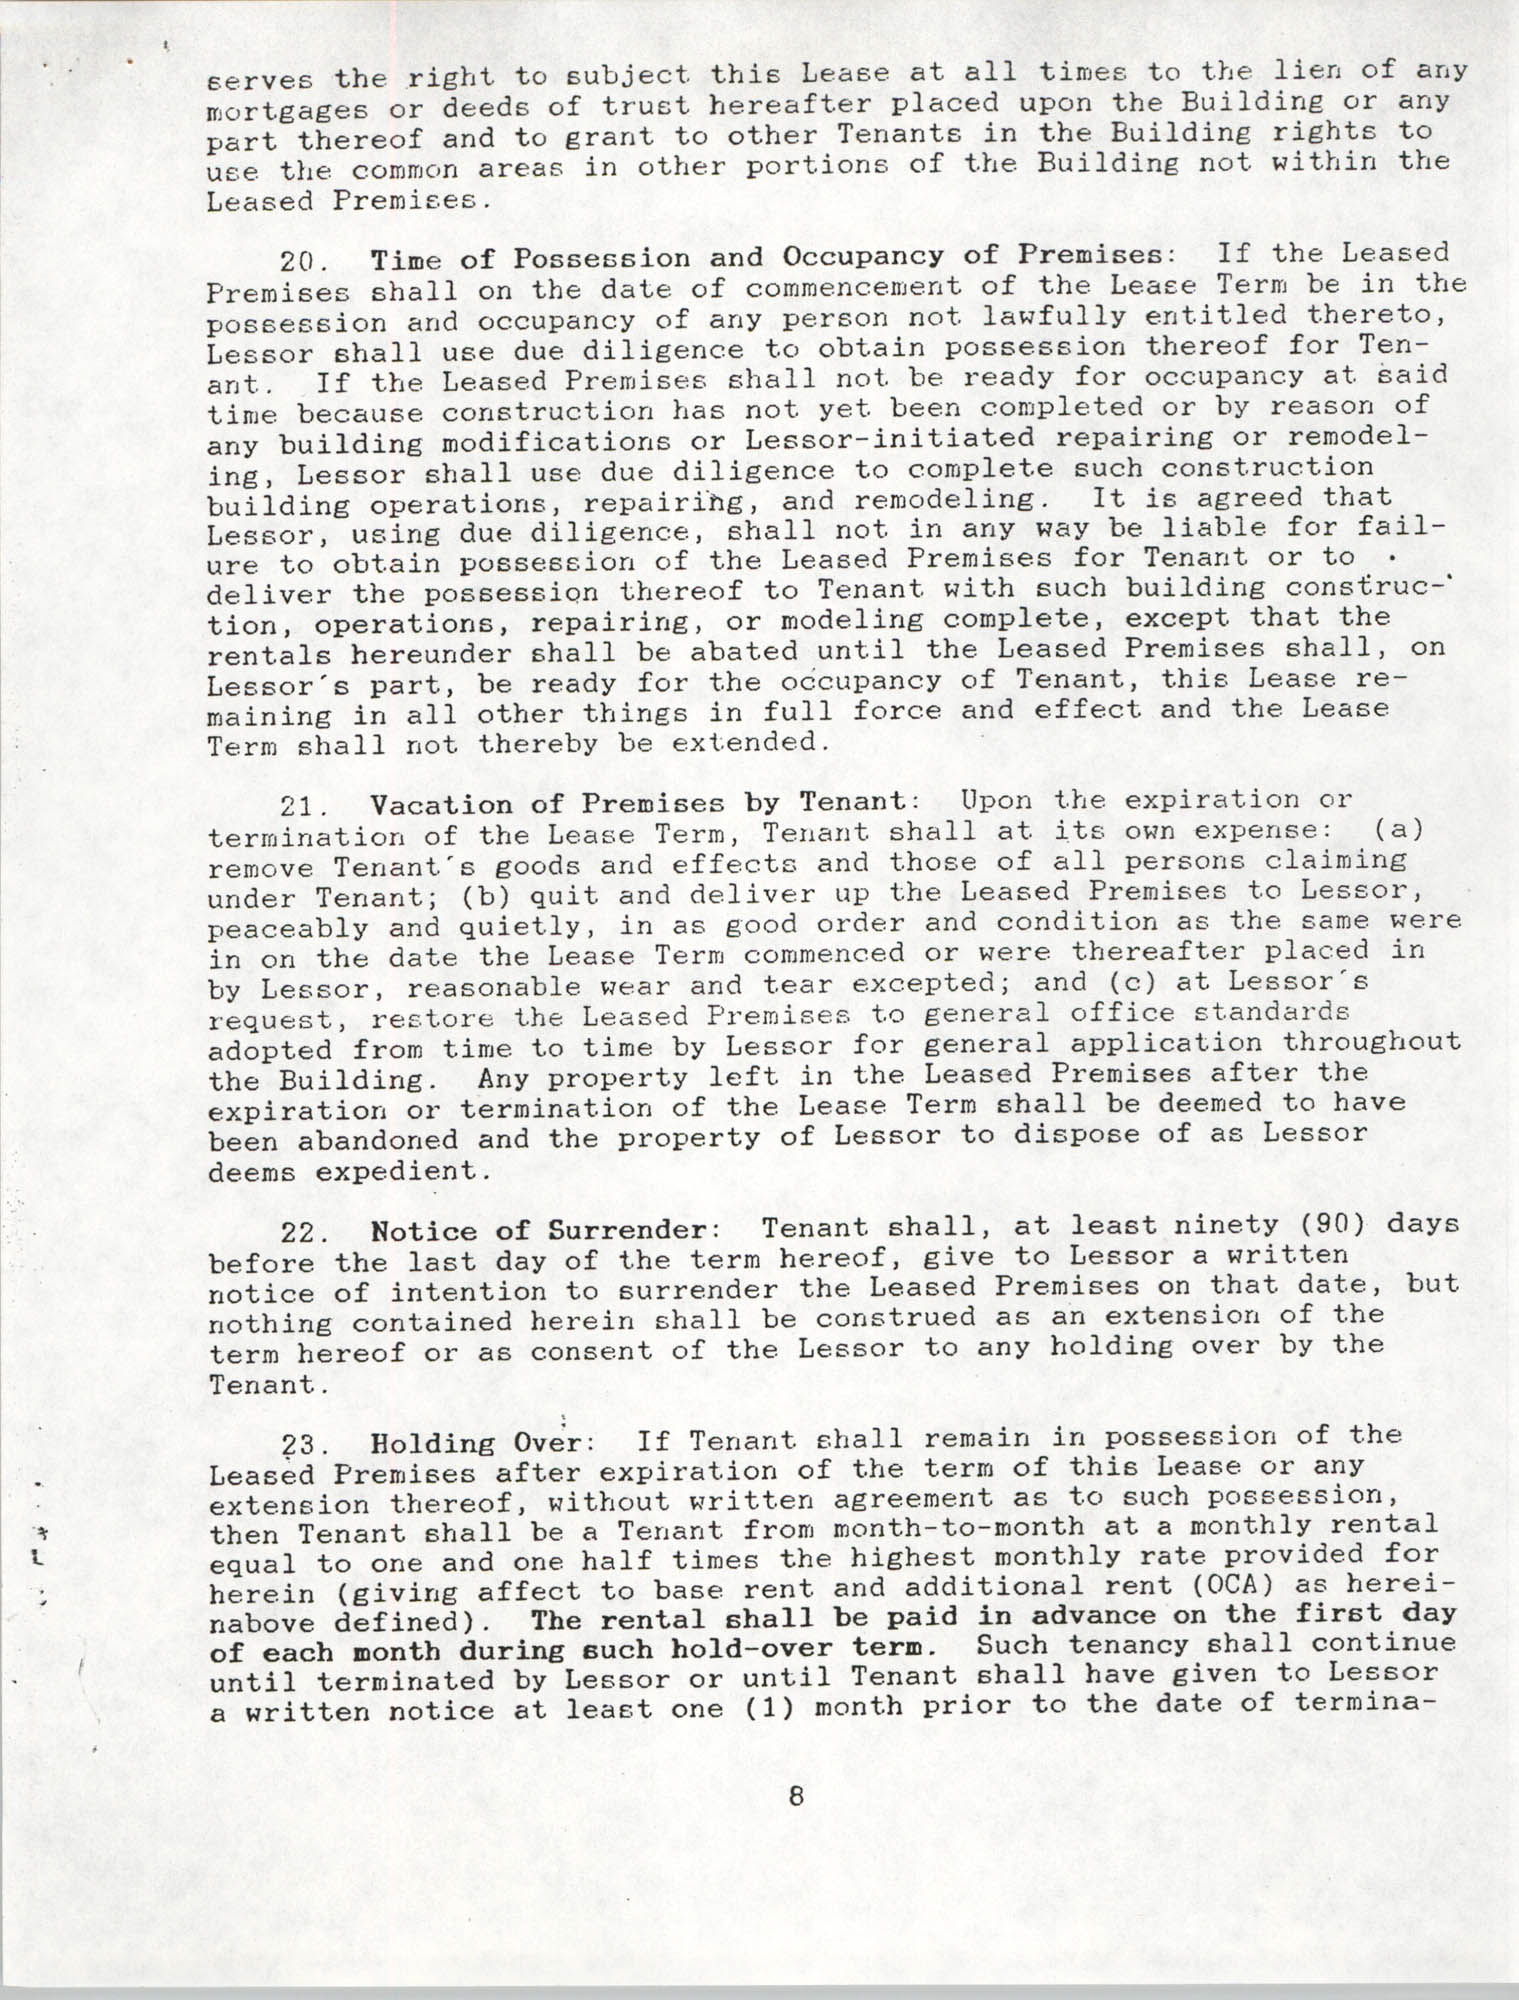 Charleston Branch of the NAACP Leasing Agreement, June 1991 to June 1994, Page 8